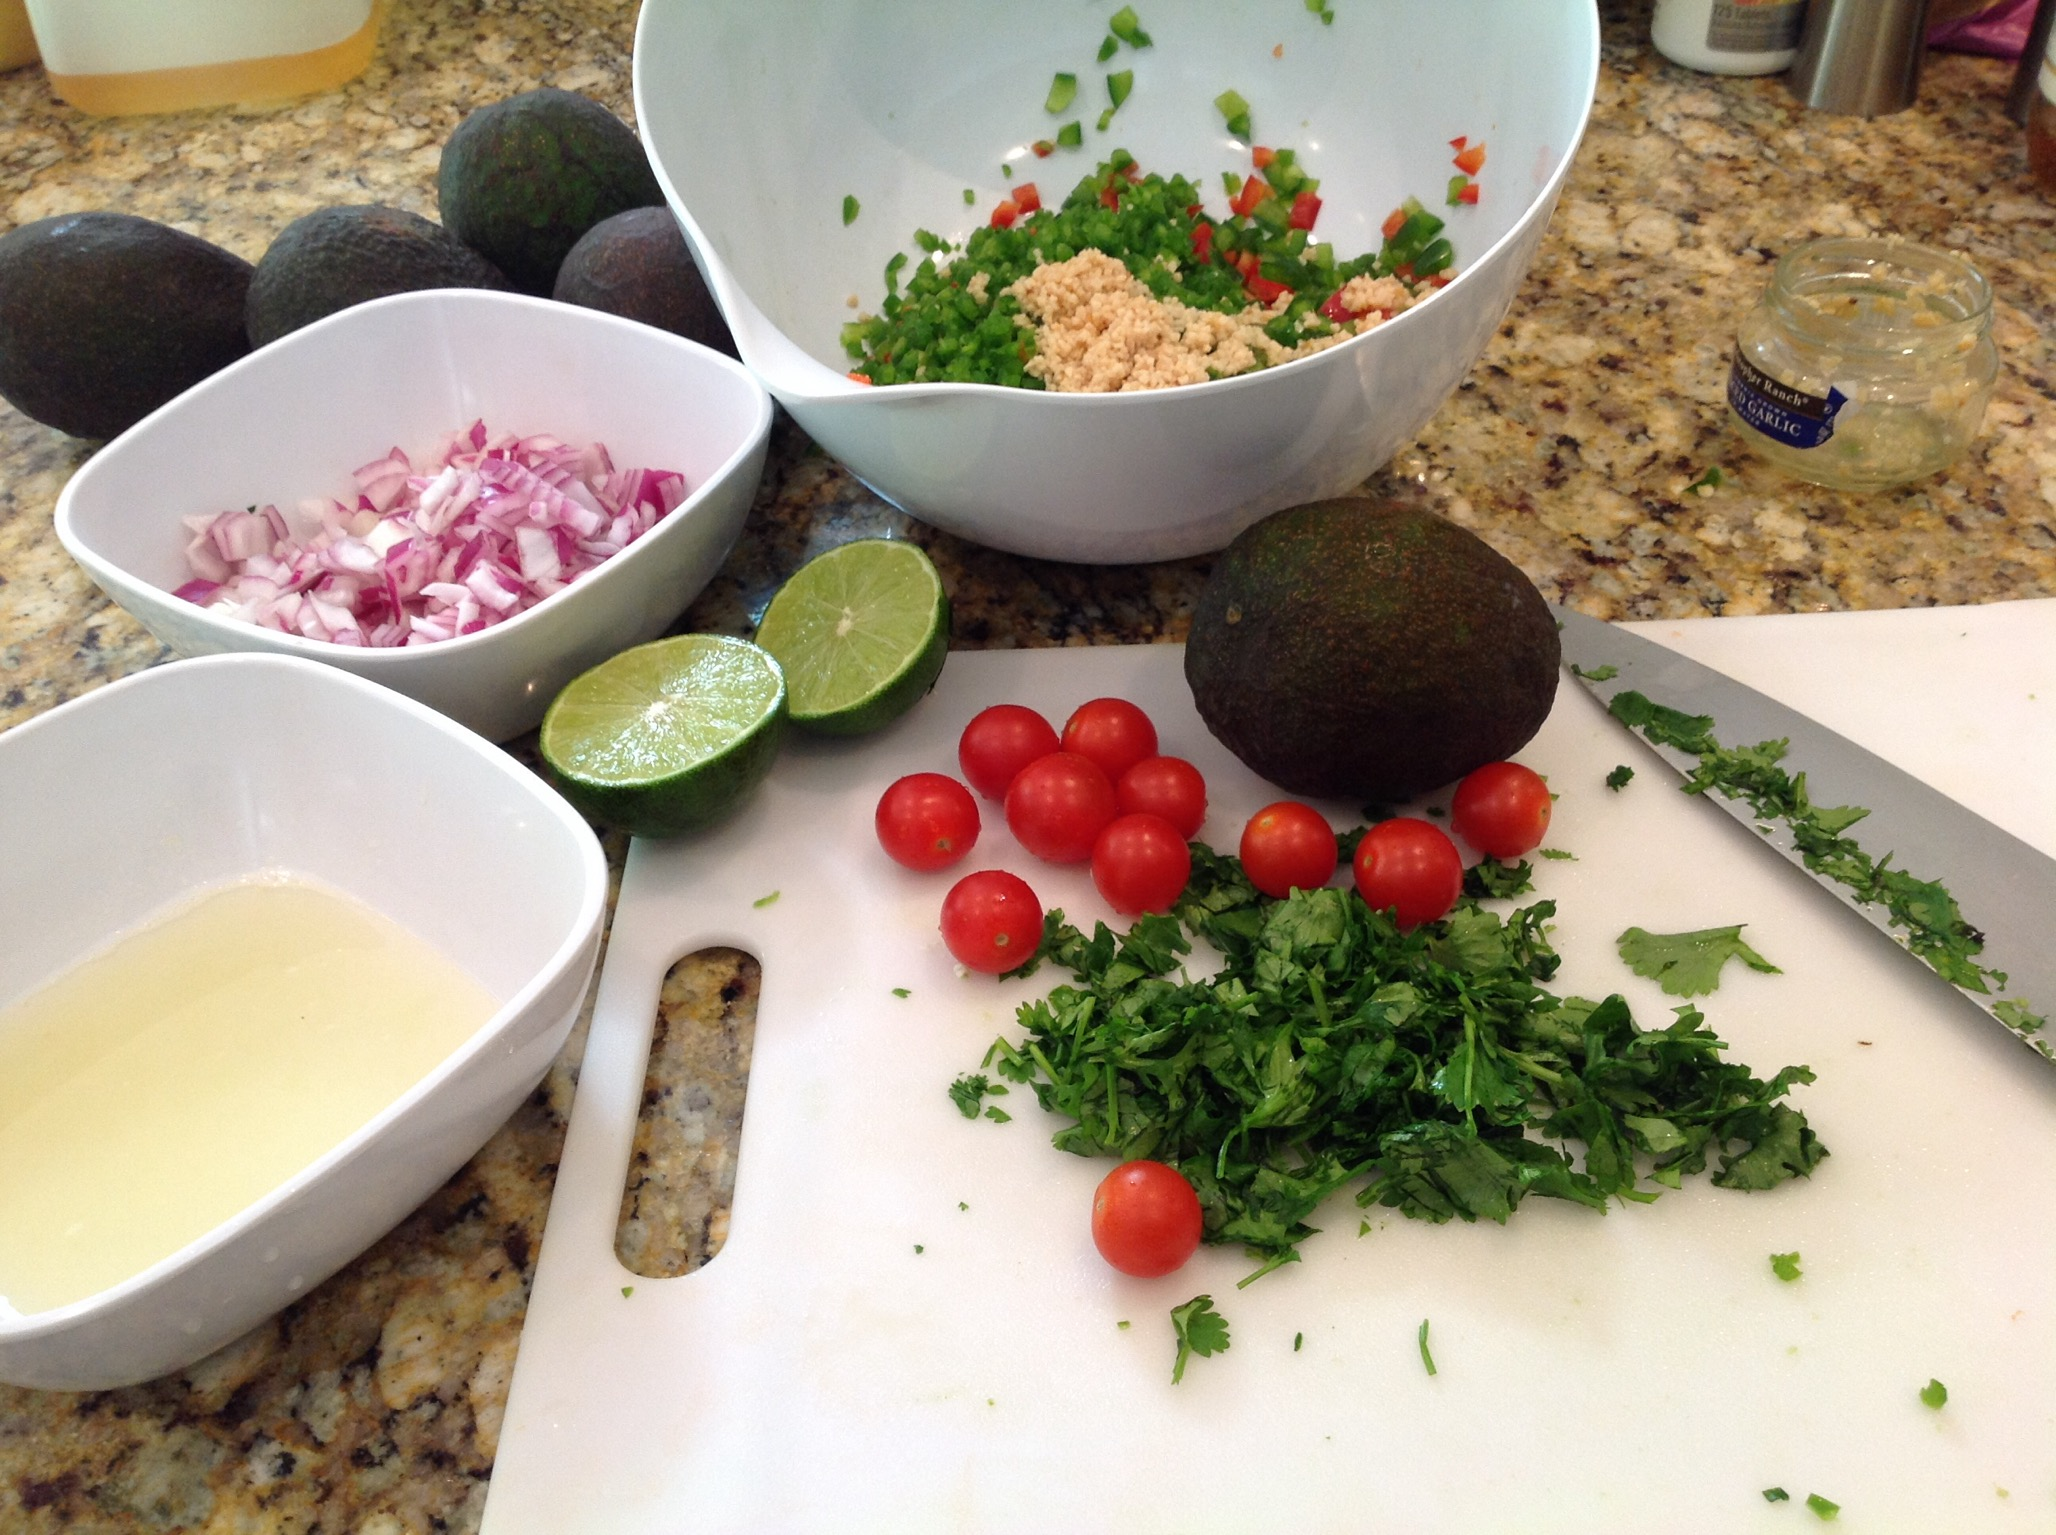 Fixings for Garlicky Guacamole(1).JPG